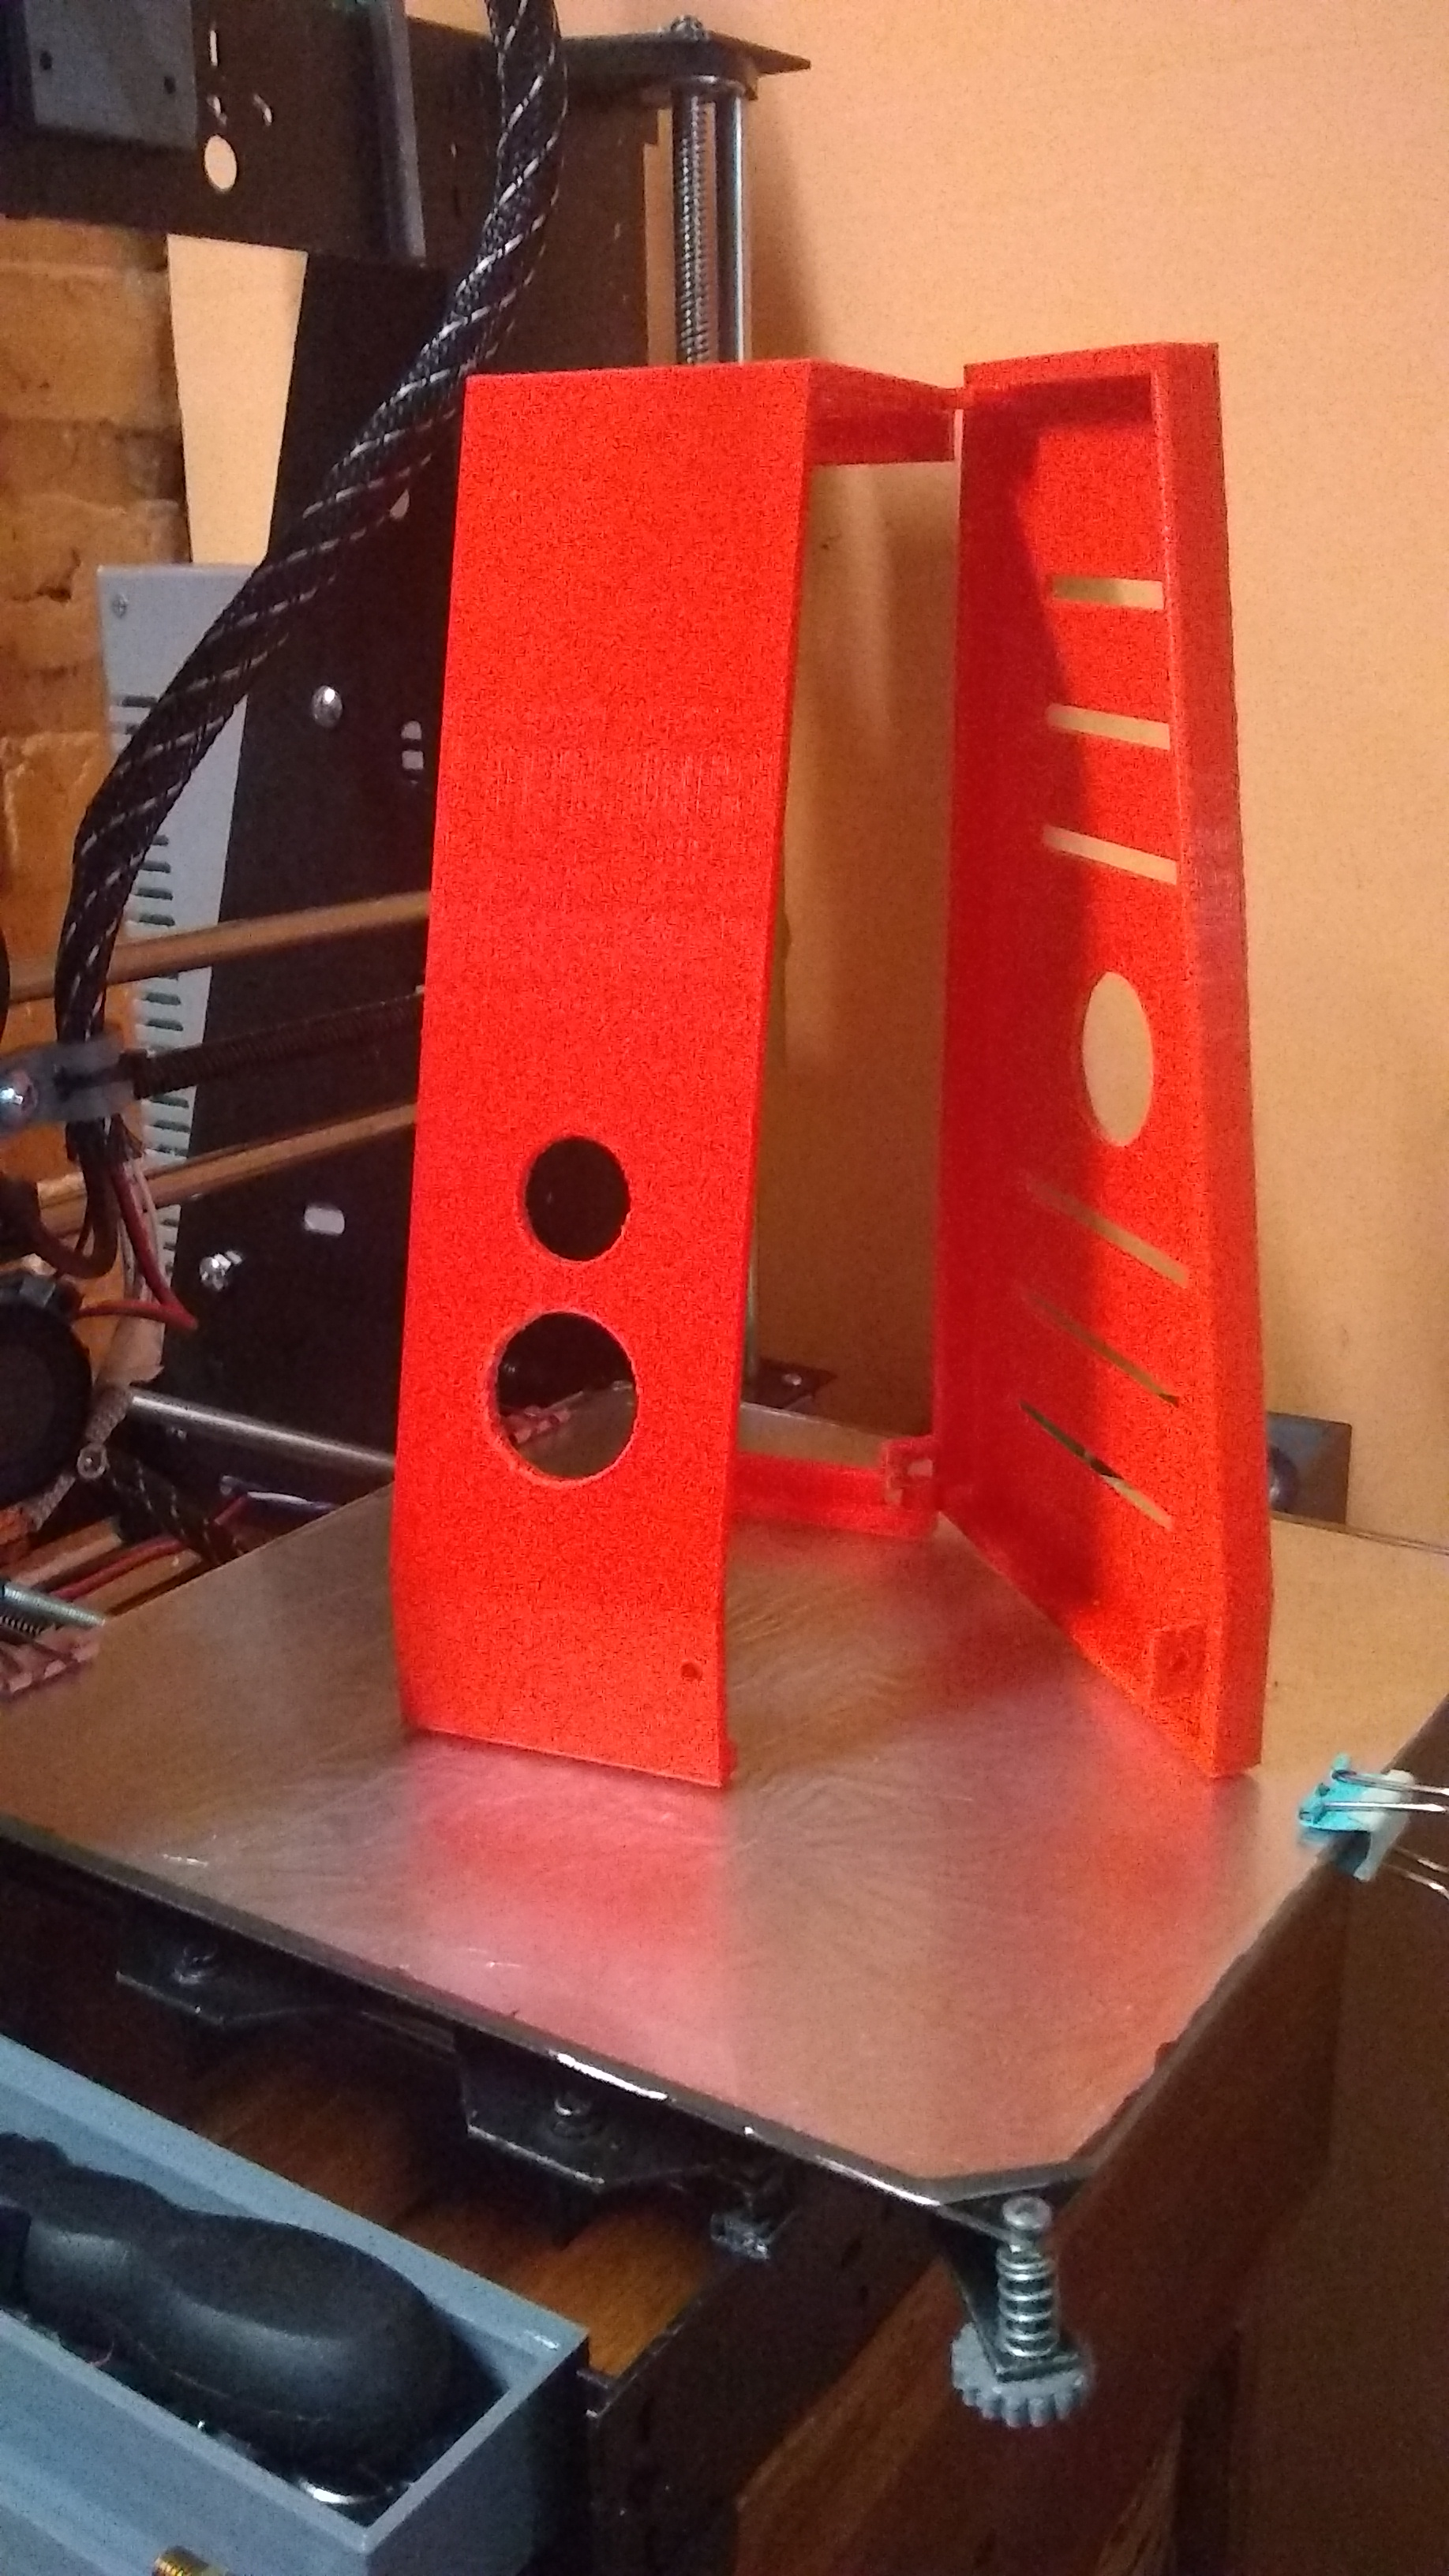 RAMPS Enclosure for Prusa Steel